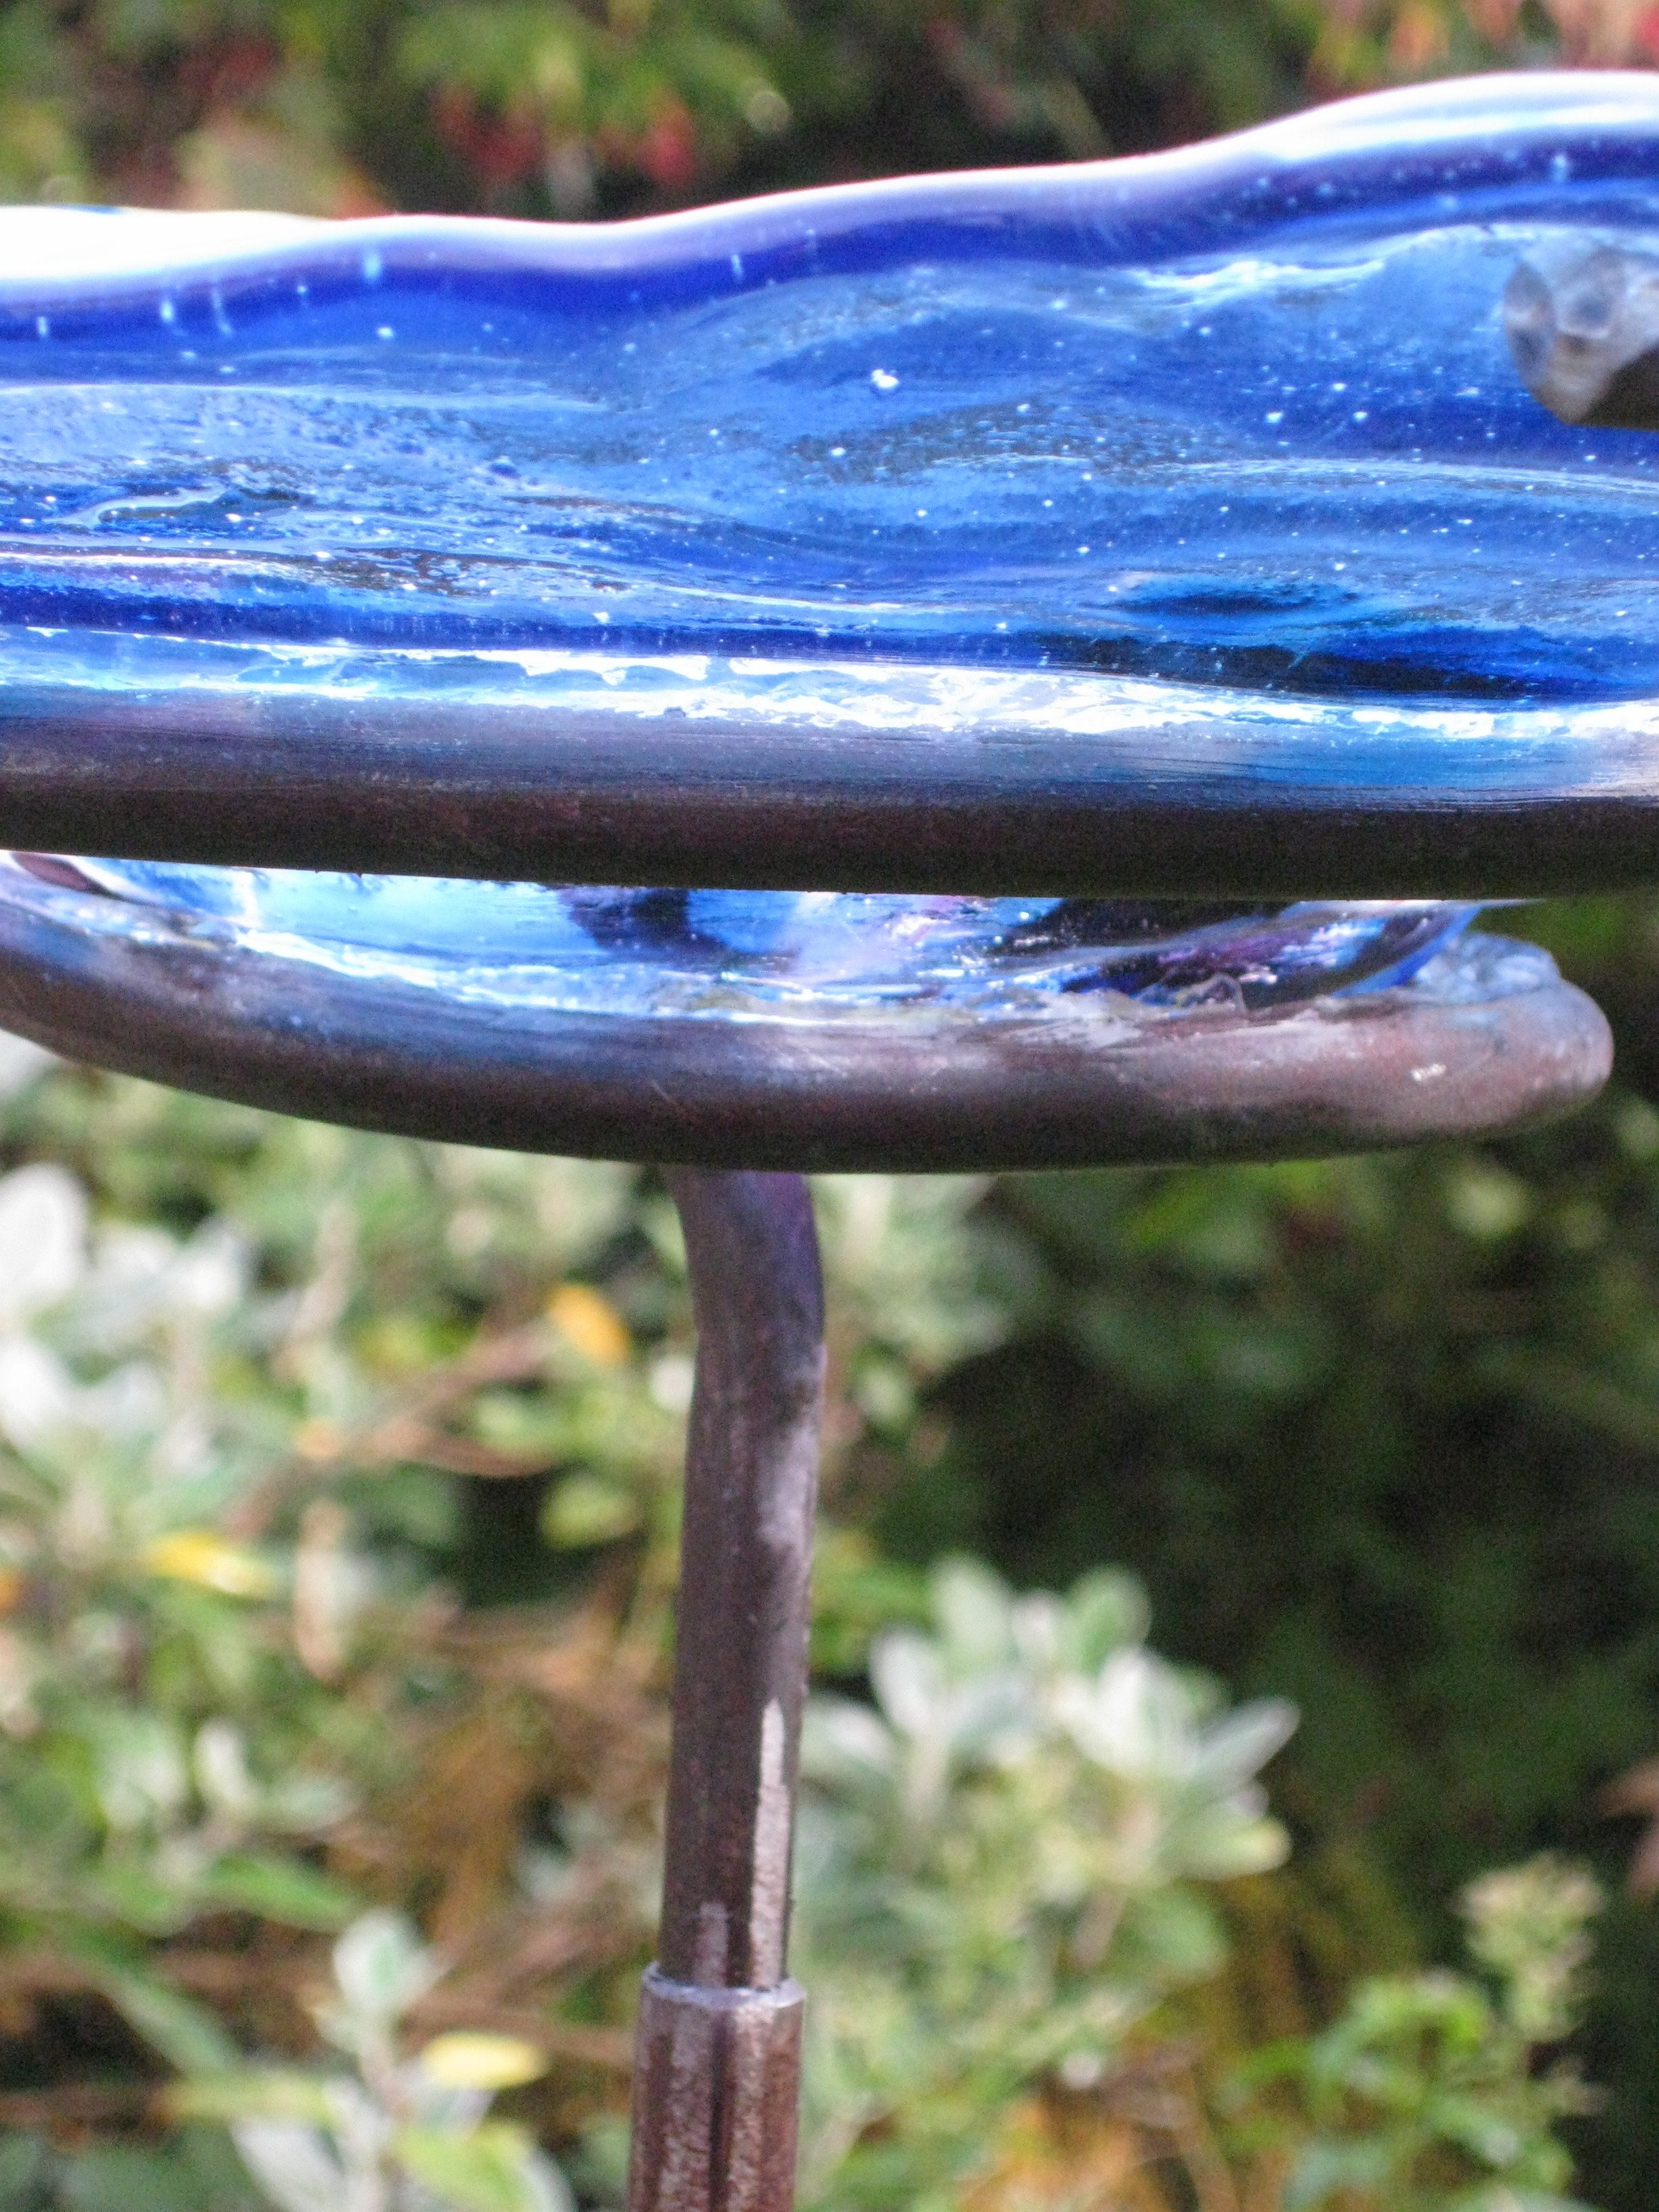 blue-bird-bath-1-7